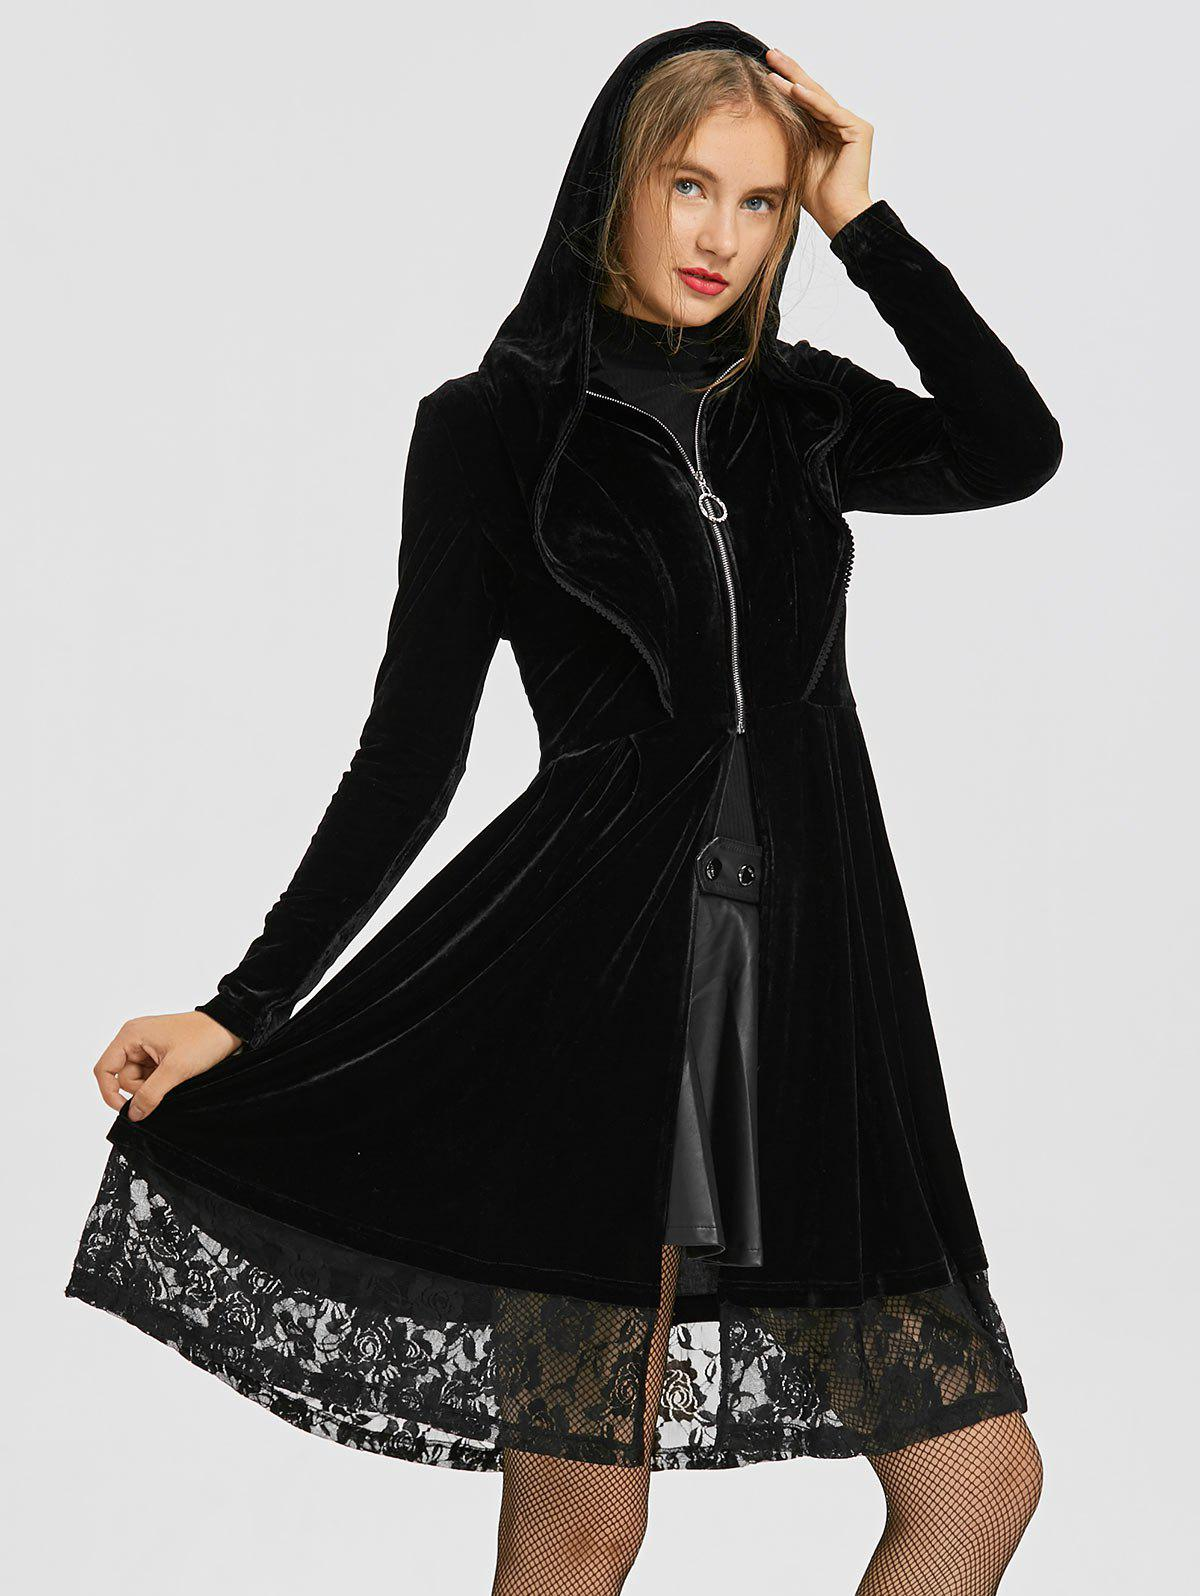 Ruffle Neck Lace Iansert Long Hooded Velvet CoatWOMEN<br><br>Size: XL; Color: BLACK; Clothes Type: Others; Material: Polyester; Type: Slim; Shirt Length: Long; Sleeve Length: Full; Collar: Stand-Up Collar; Pattern Type: Solid; Embellishment: Lace; Style: Fashion; Season: Fall,Winter; Weight: 0.7330kg; Package Contents: 1 x Coat;